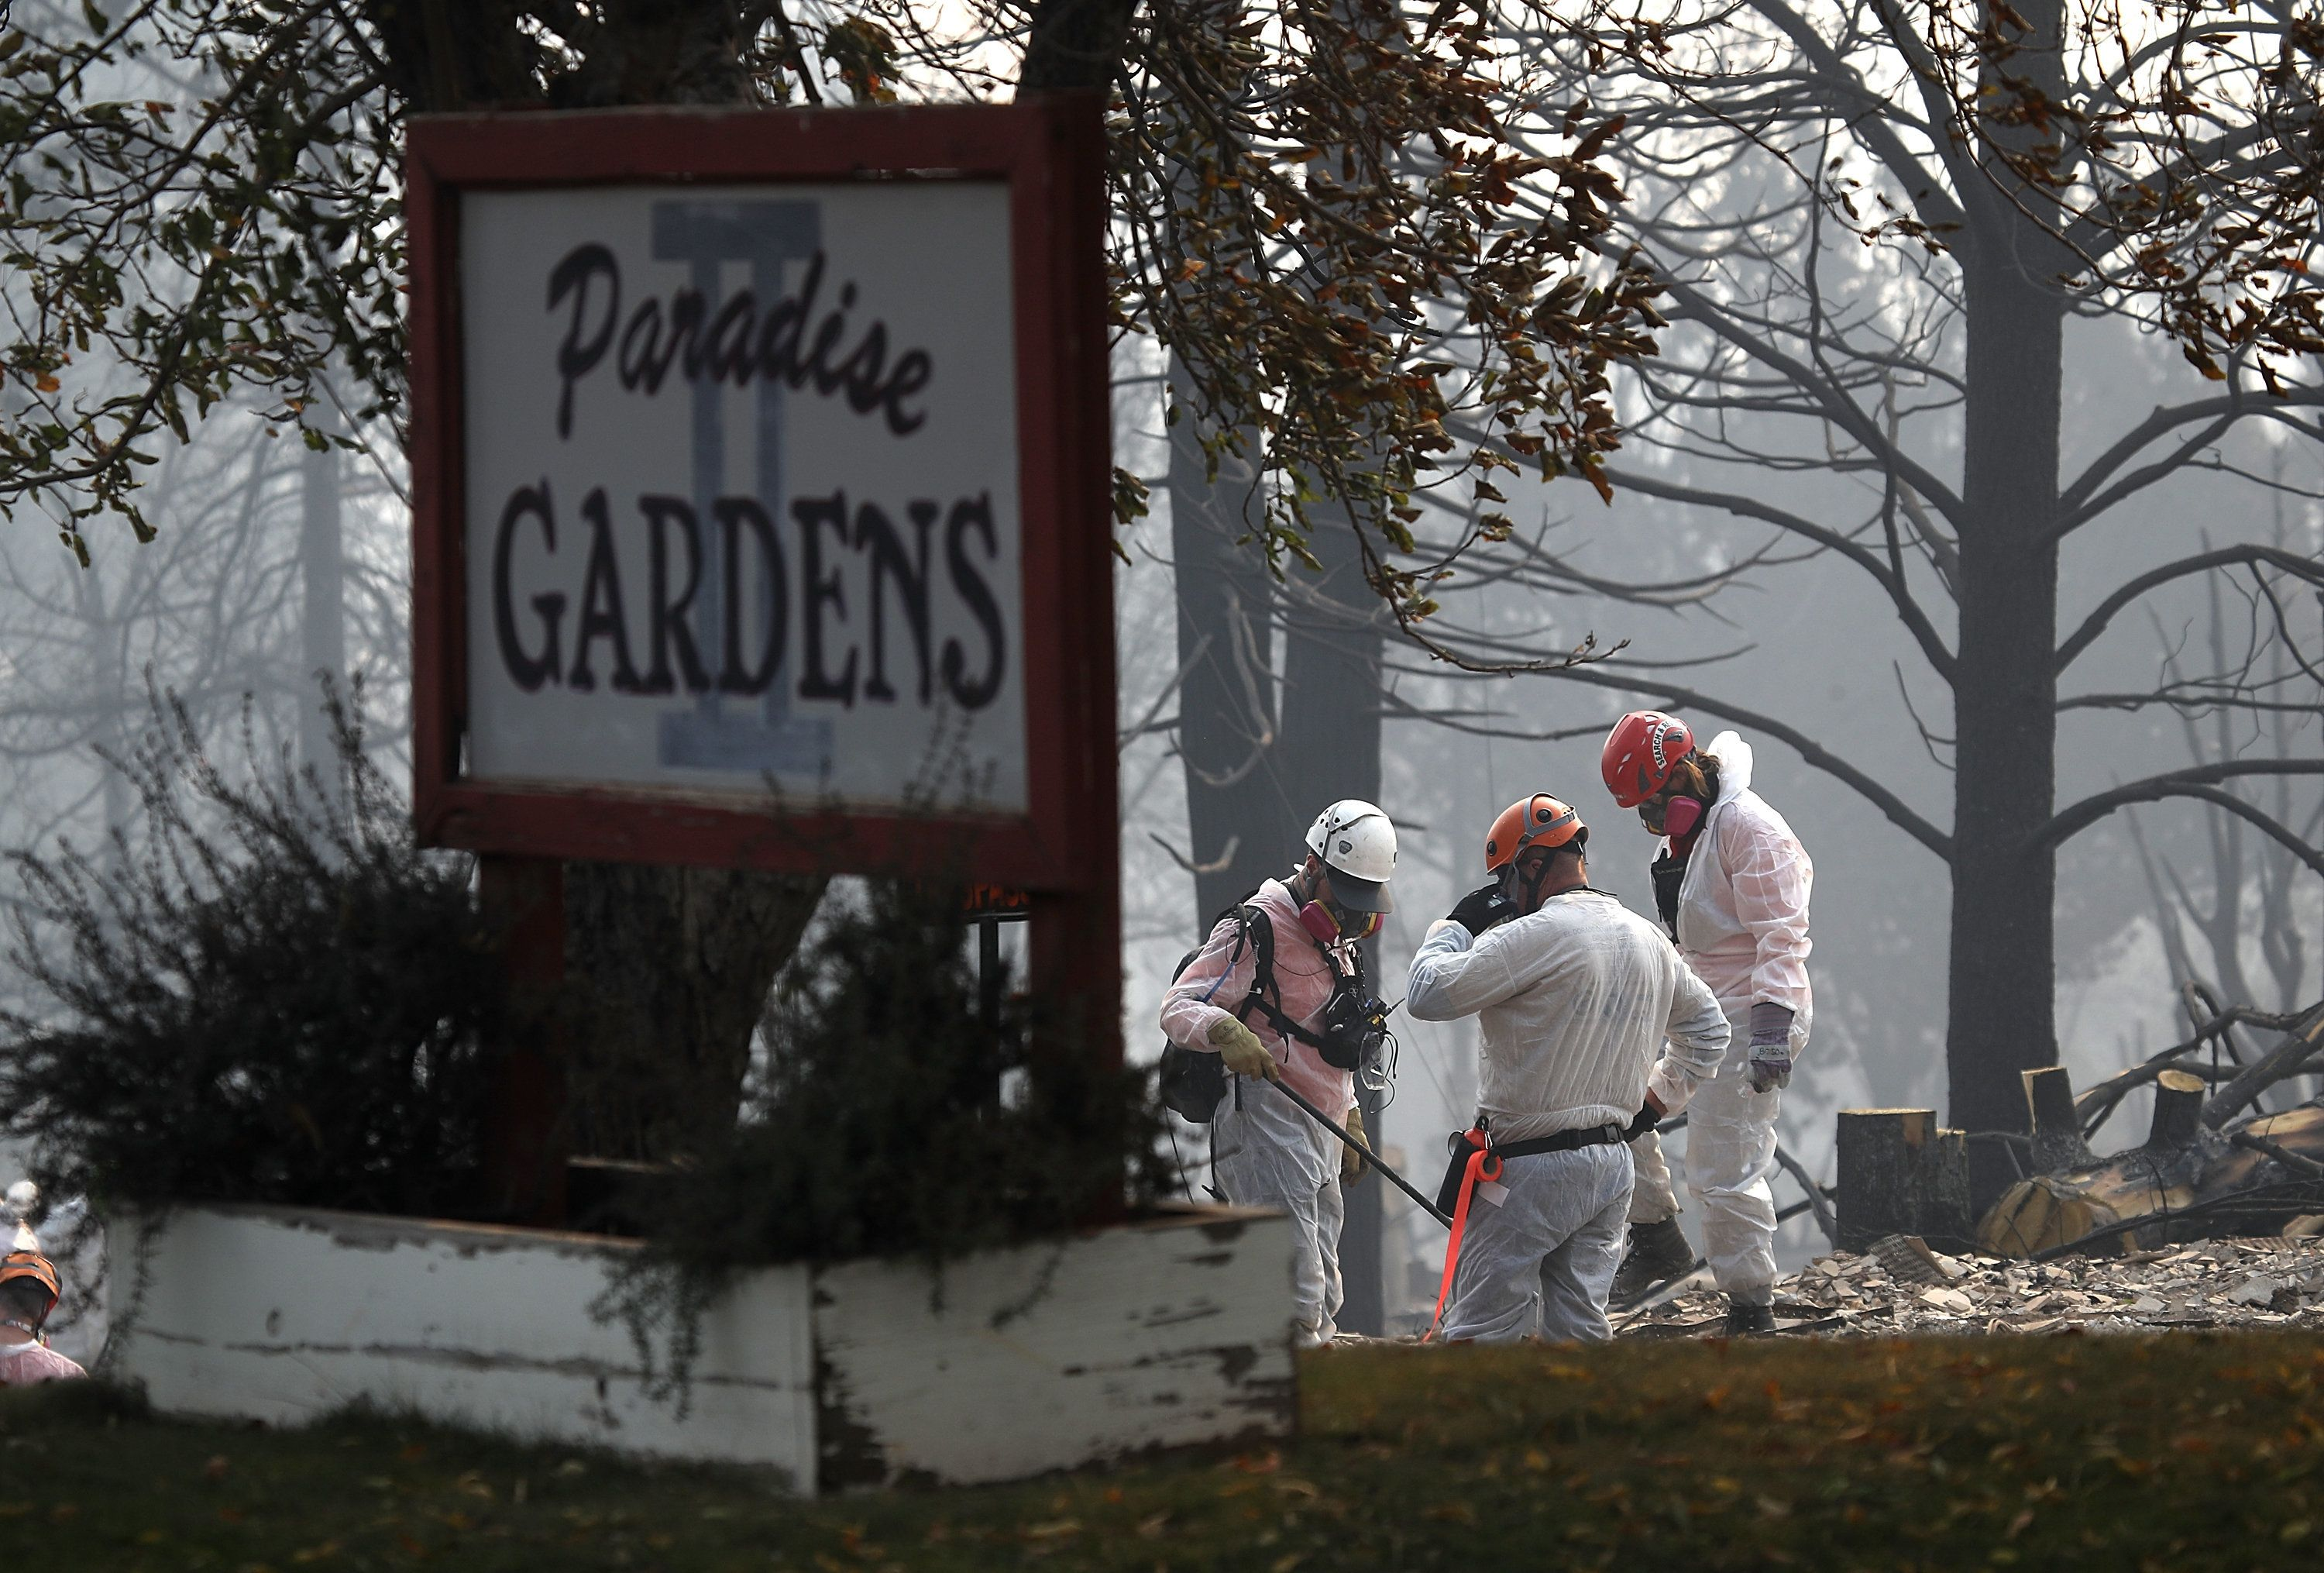 PARADISE, CA - NOVEMBER 16:  Rescue workers search the Paradise Gardens apartments for victims of the Camp Fire on November 16, 2018 in Paradise, California. Fueled by high winds and low humidity the Camp Fire ripped through the town of Paradise charring over 140,000 acres, killed at least 63 people and has destroyed over 11,000 homes and businesses. The fire is currently at 45 percent containment and 631 people still remain missing.  (Photo by Justin Sullivan/Getty Images)